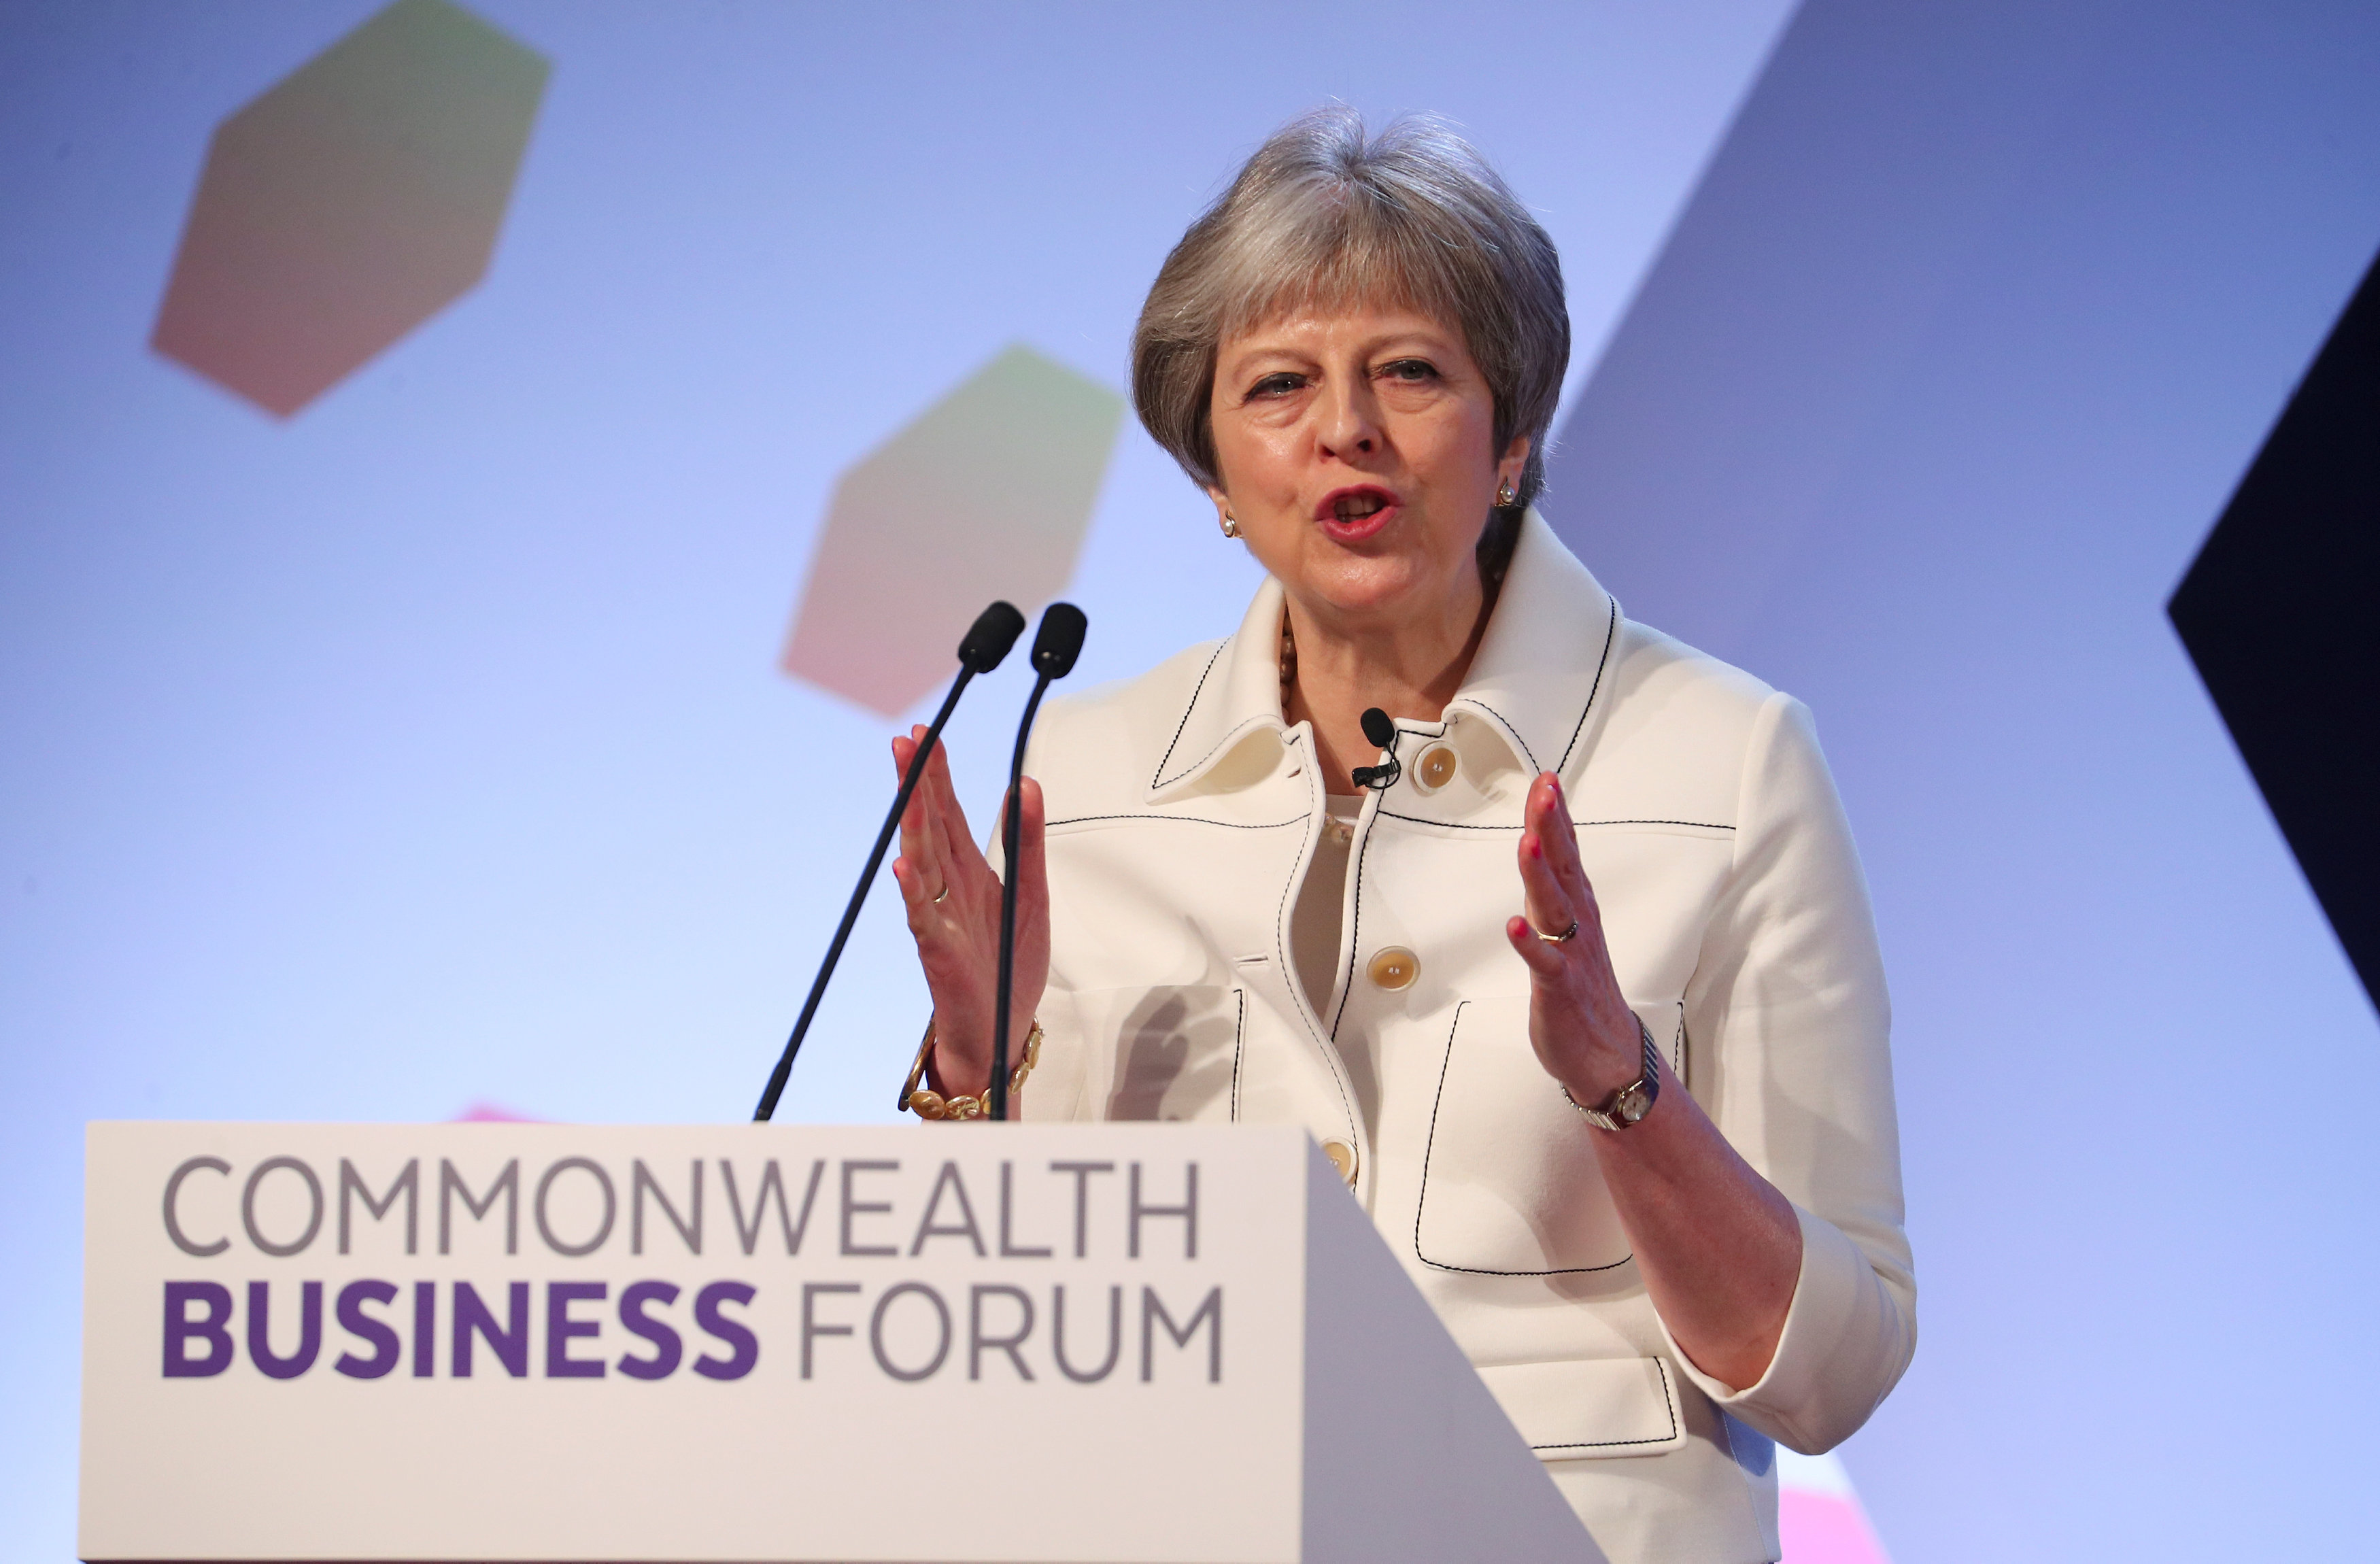 May seeks Commonwealth trade boost as final Brexit talks begin